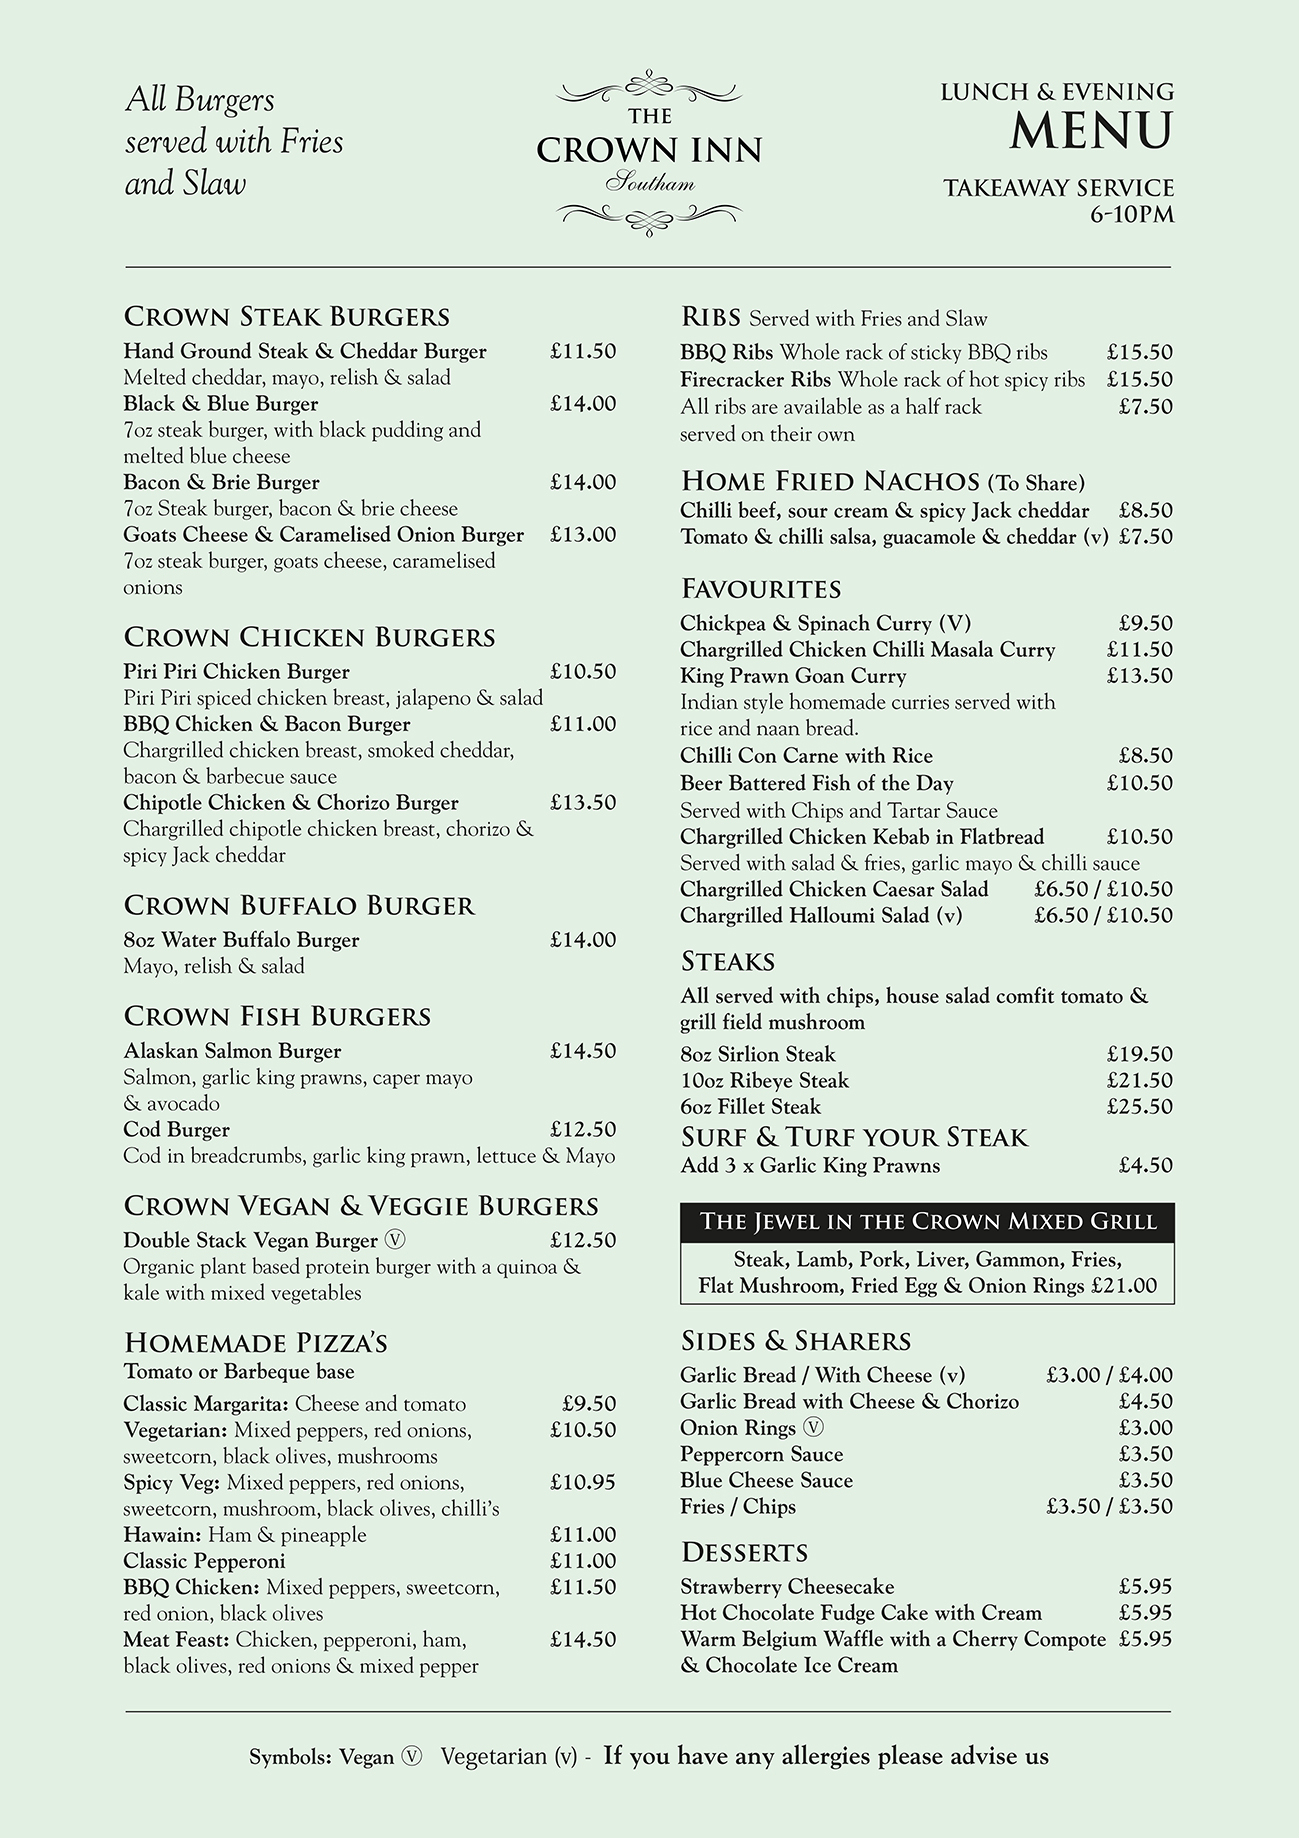 The Crown Inn Southam Lunch and Evening Menu